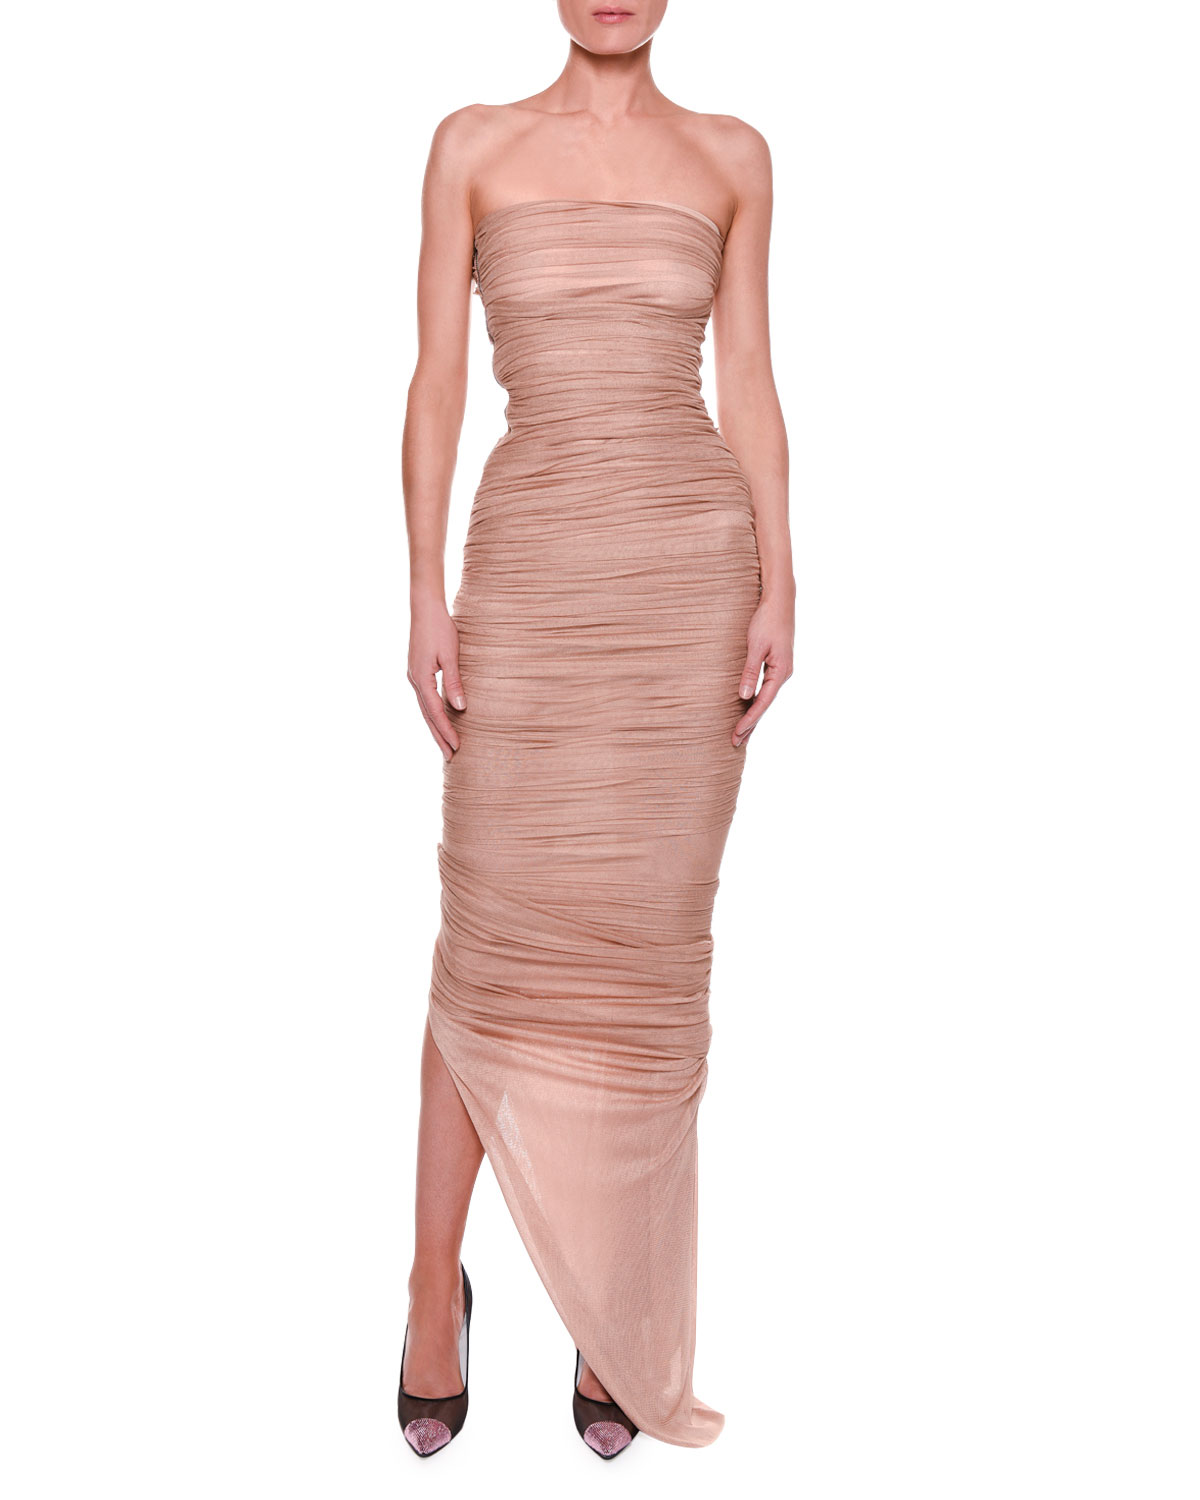 TOM FORD Strapless Bustier Ruched Gown   Neiman Marcus